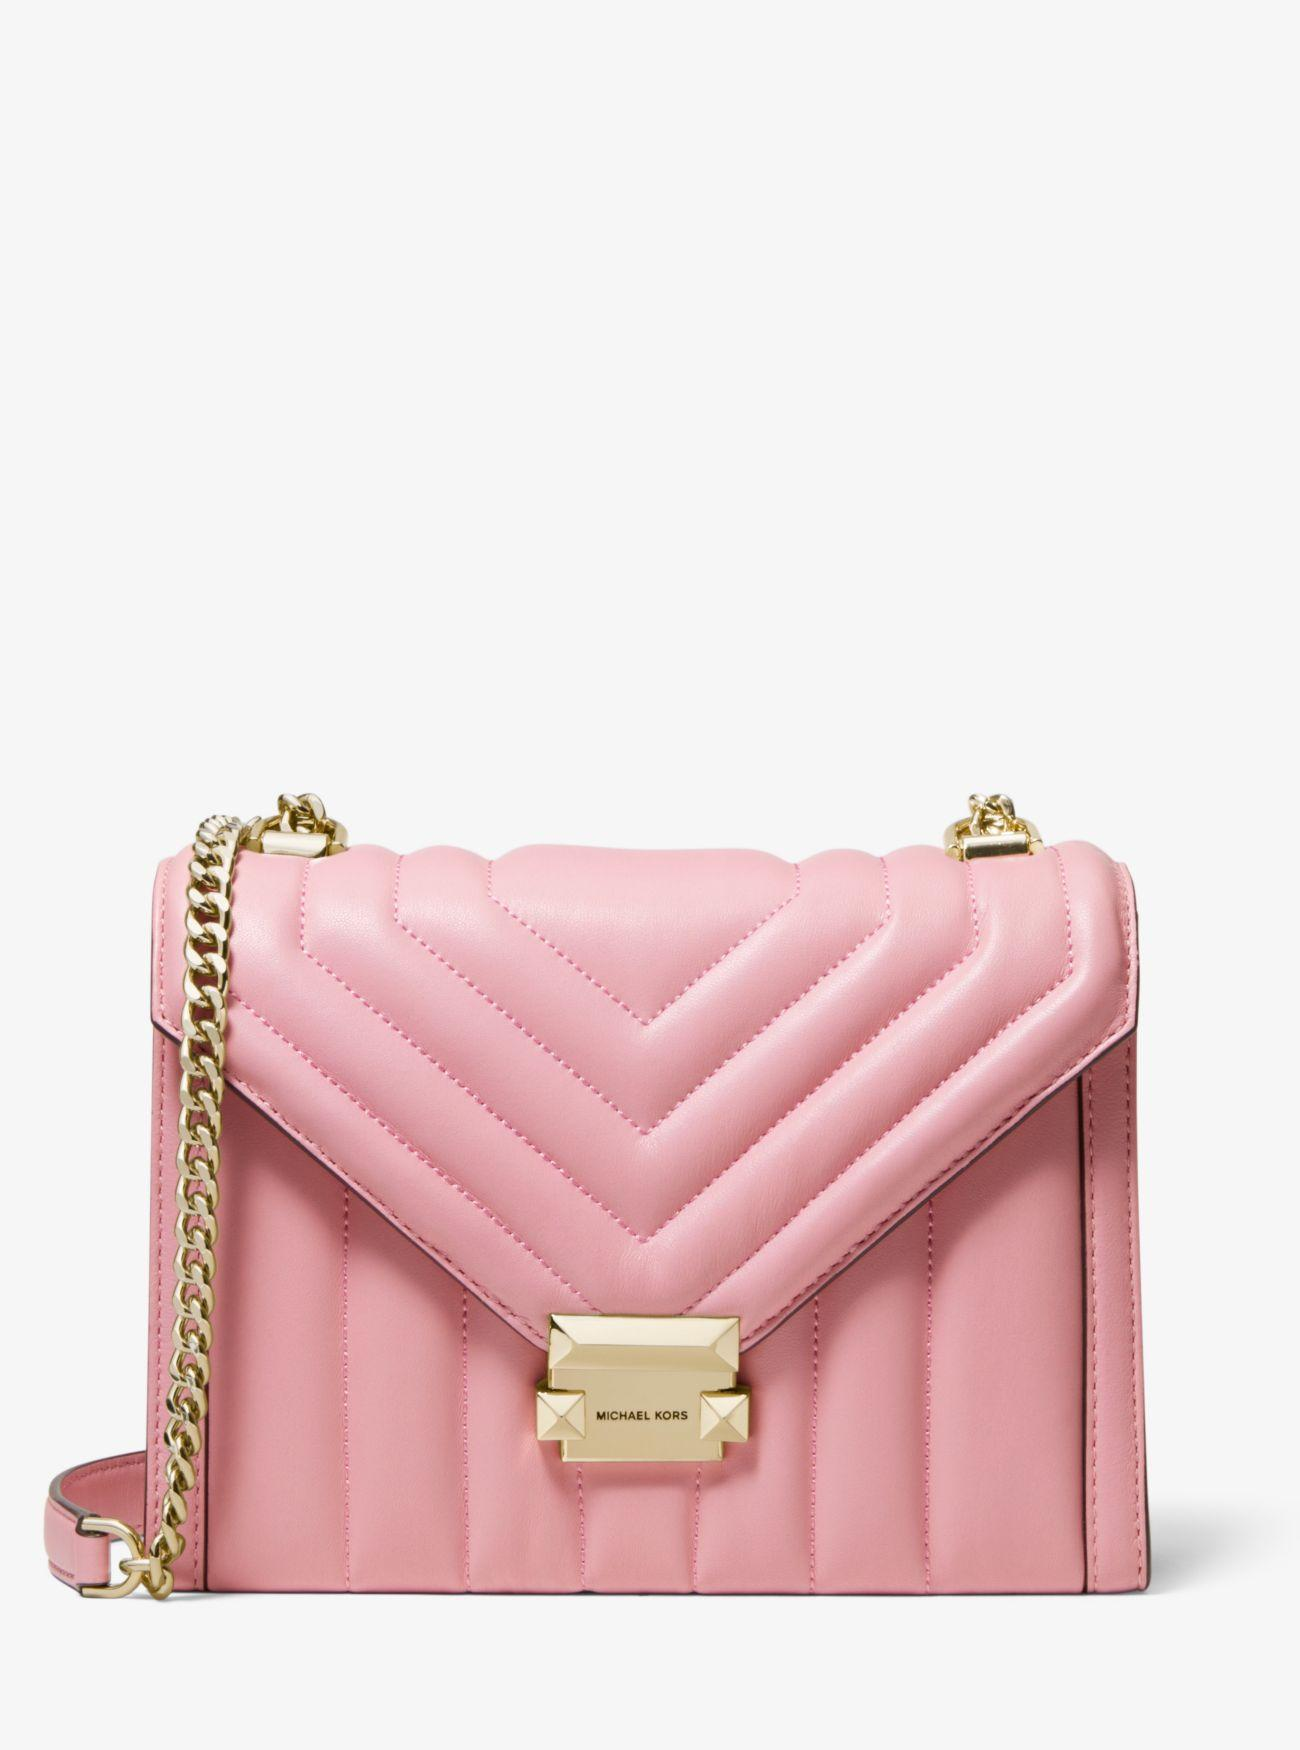 59f7534ef689 MICHAEL Michael Kors. Women s Pink Whitney Large Quilted Leather  Convertible Shoulder Bag